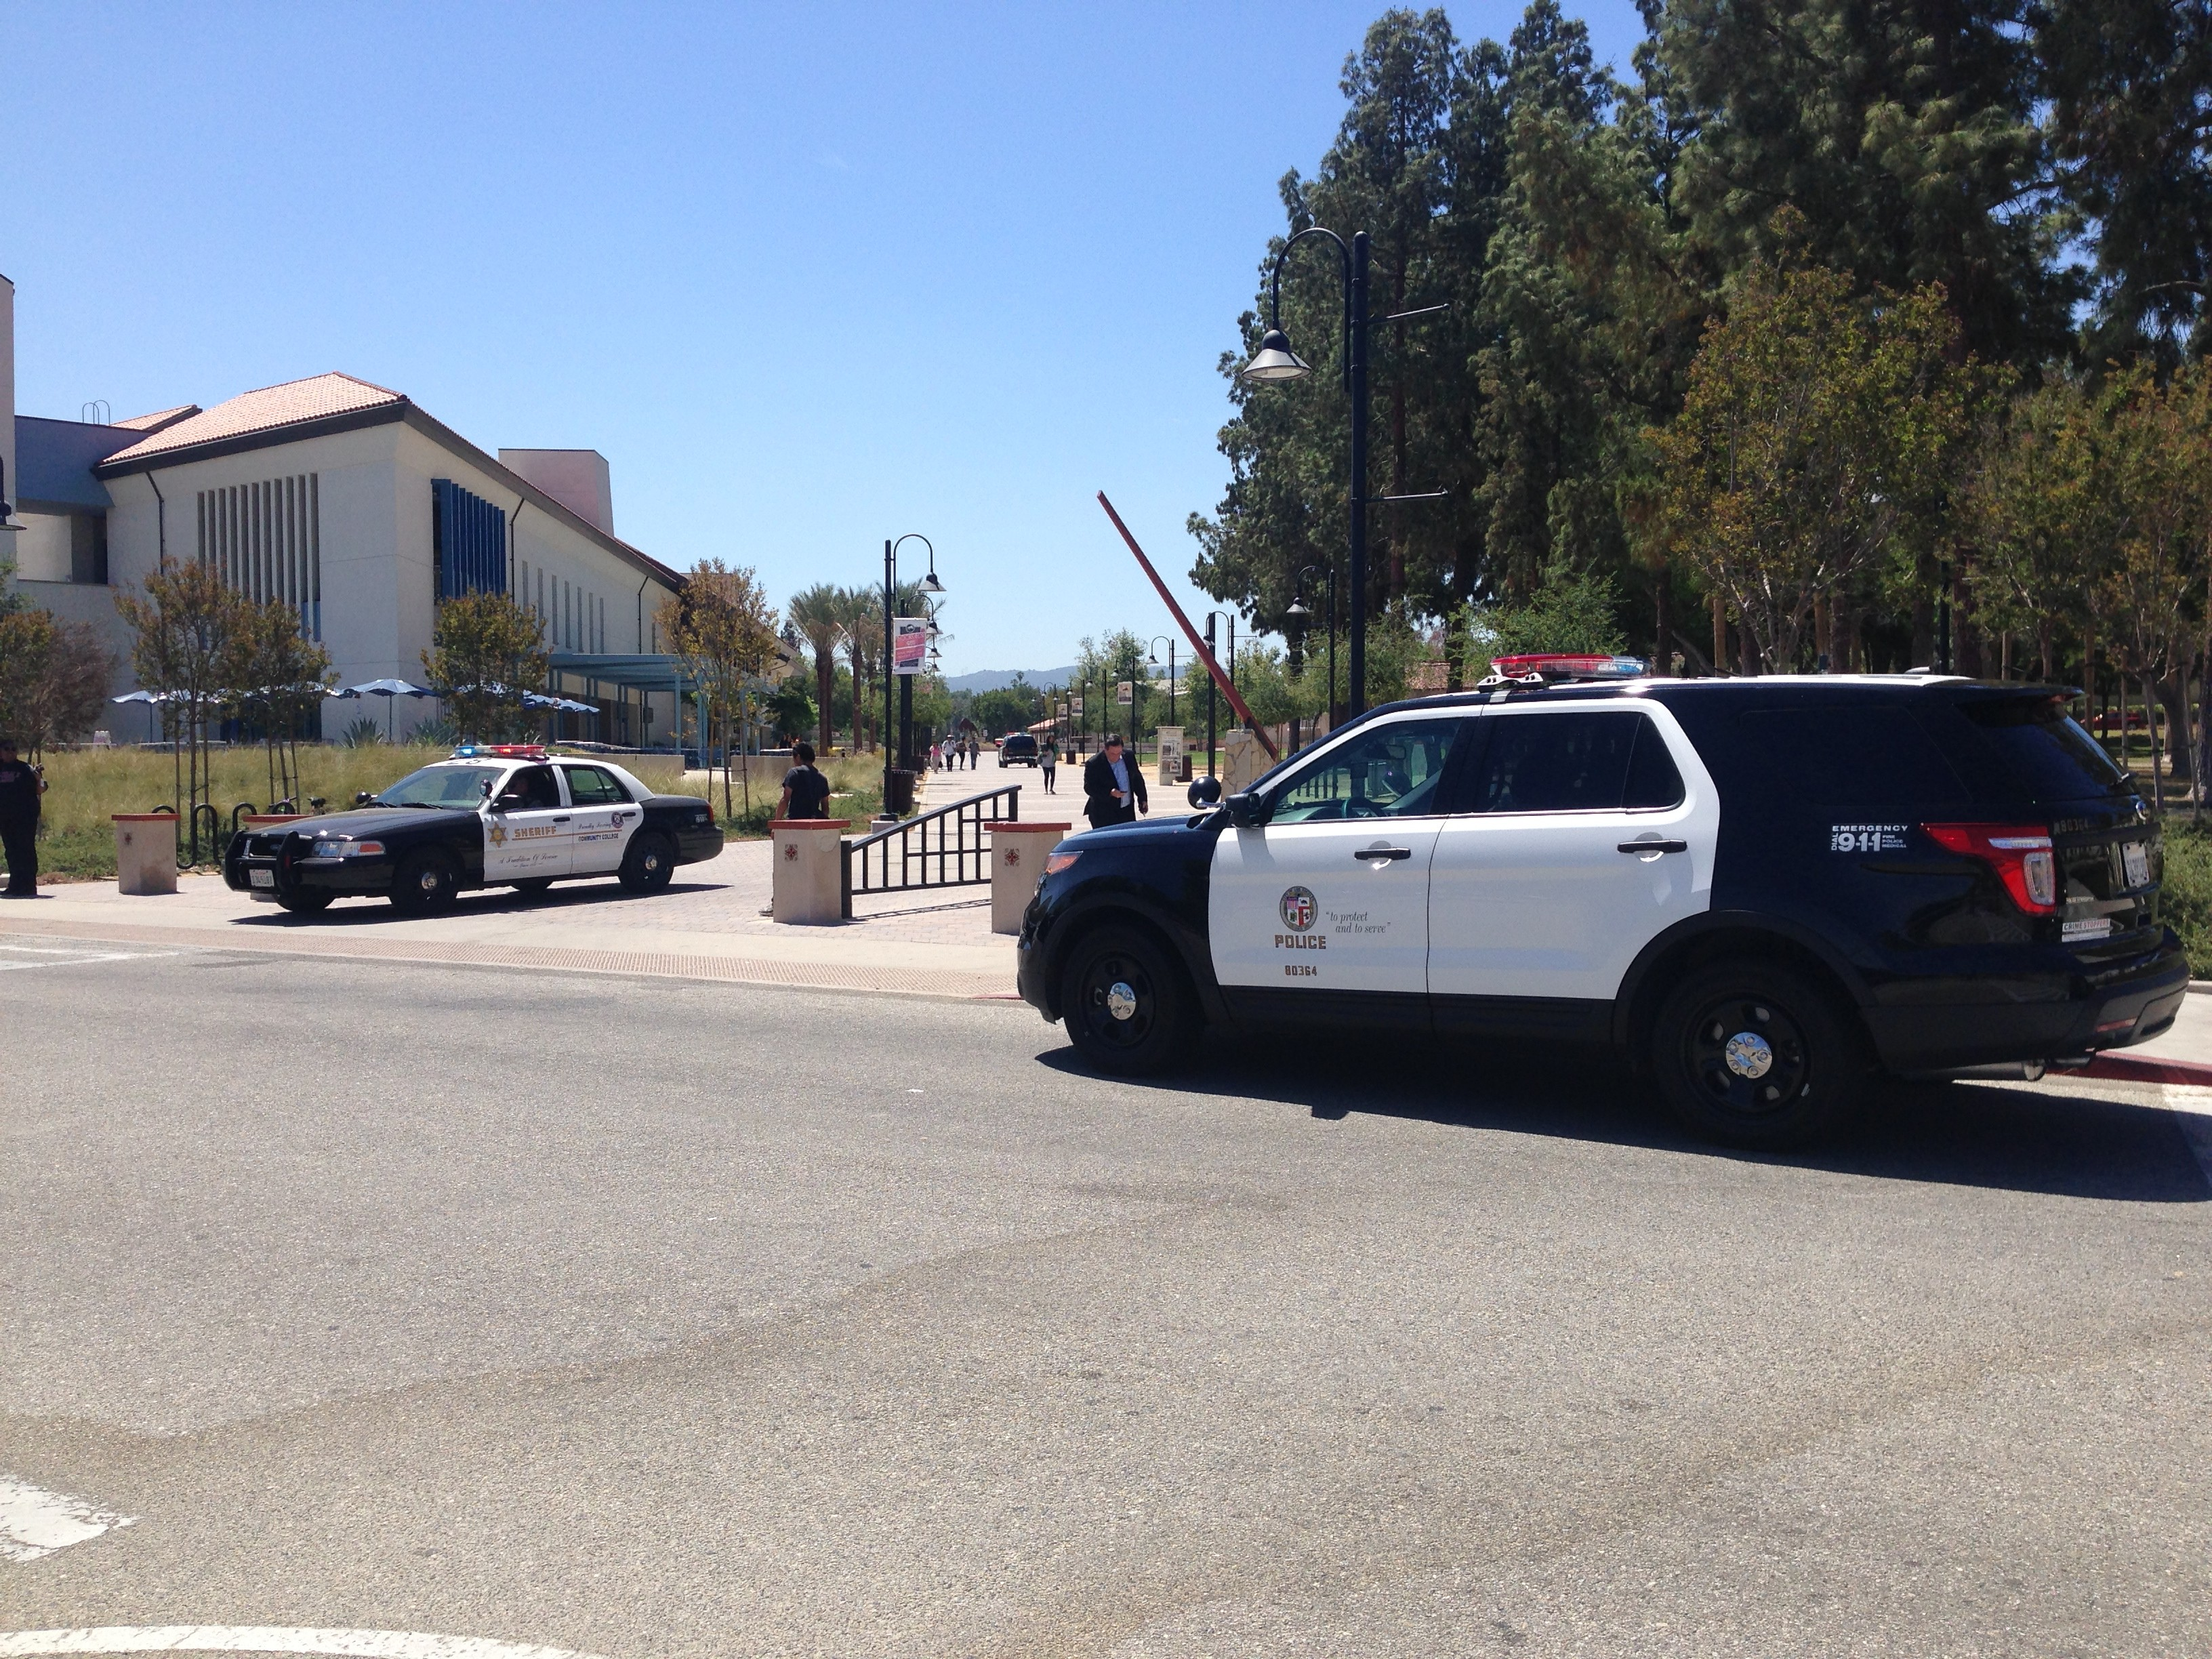 BREAKING NEWS: Pierce College campus evacuated after possible armed man is spotted